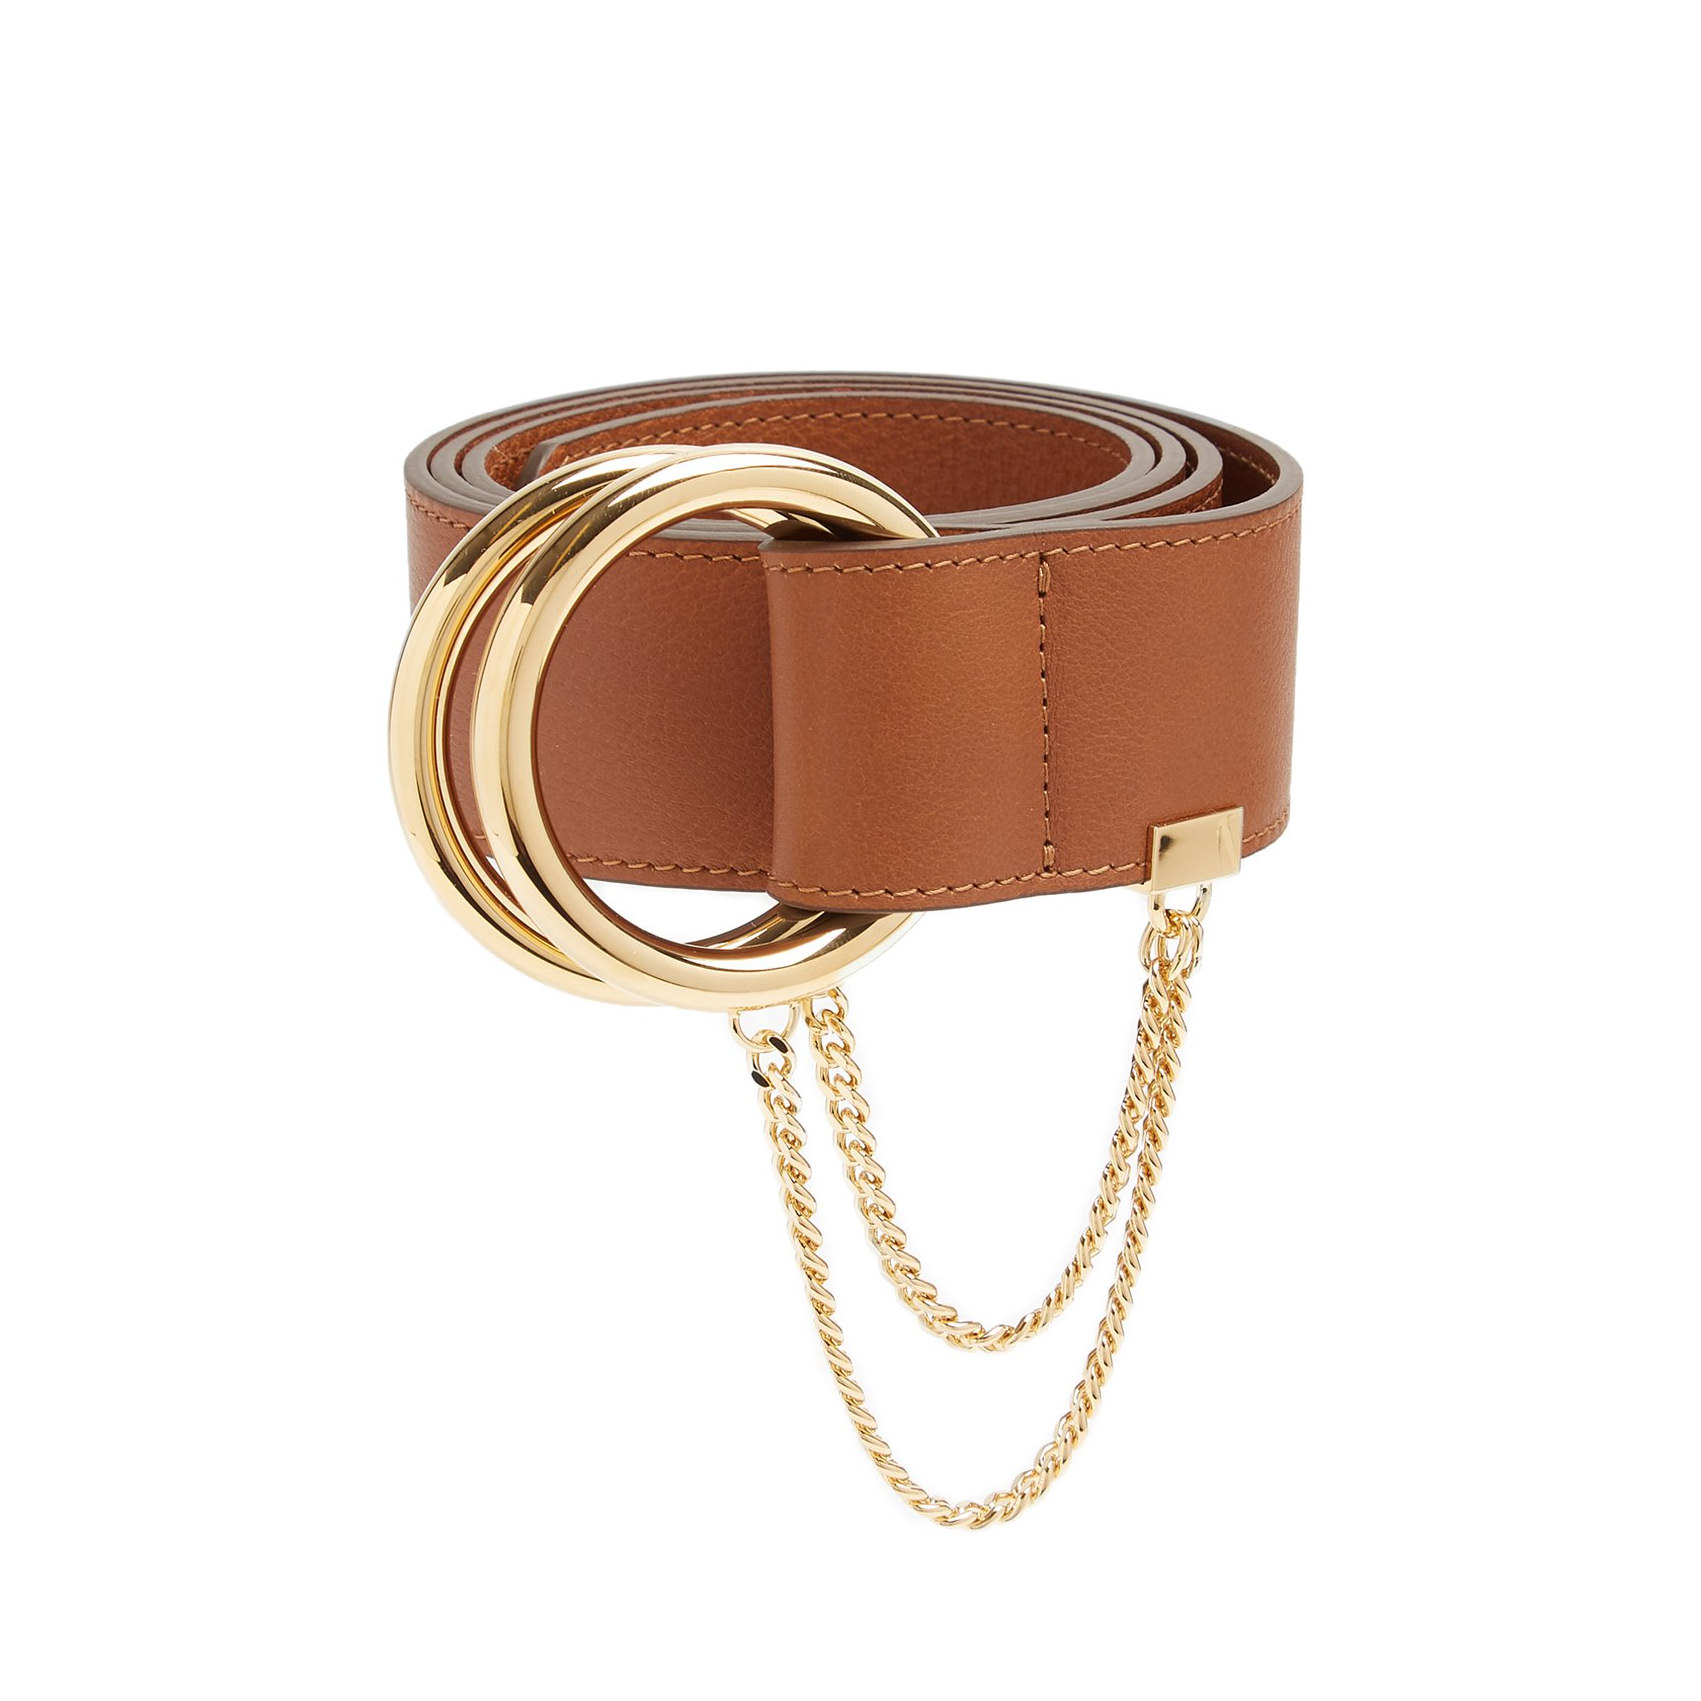 Gold-hoop leather belt